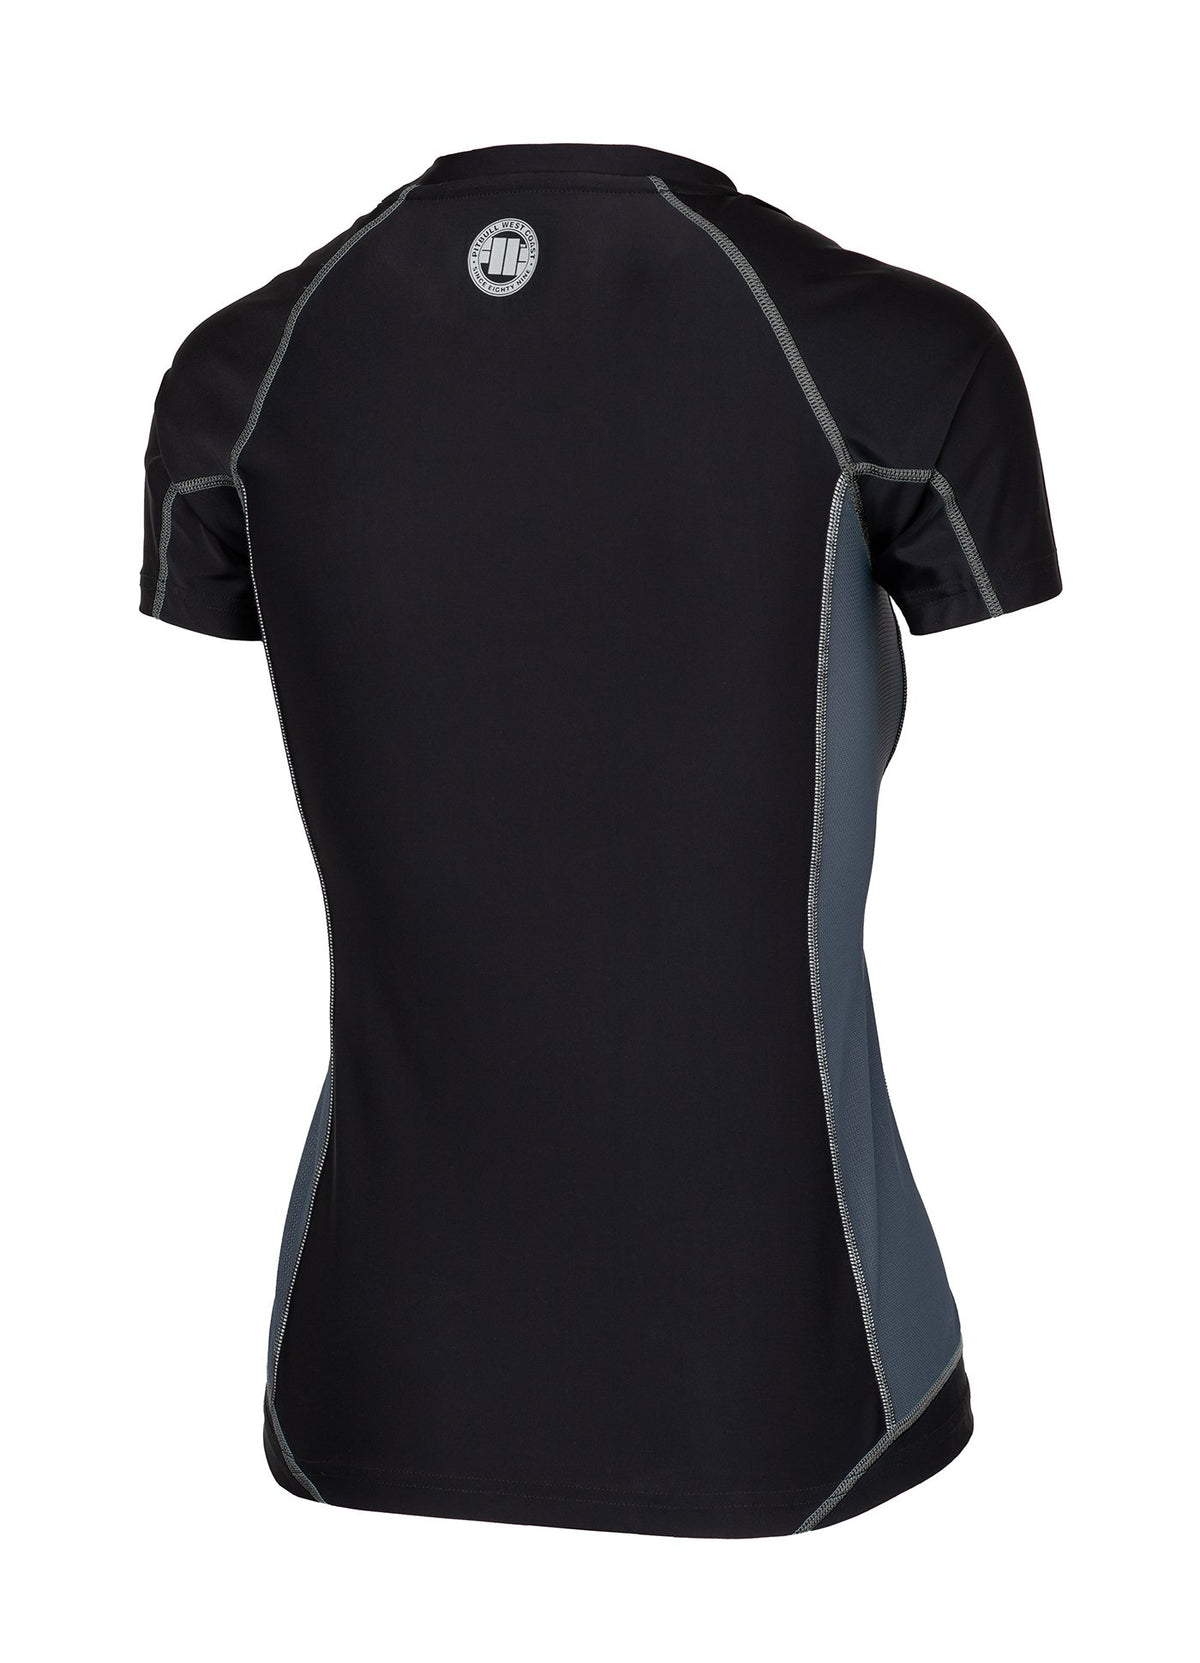 Women's Rashguard Compression PRO PLUS Black - Pitbull West Coast U.S.A.